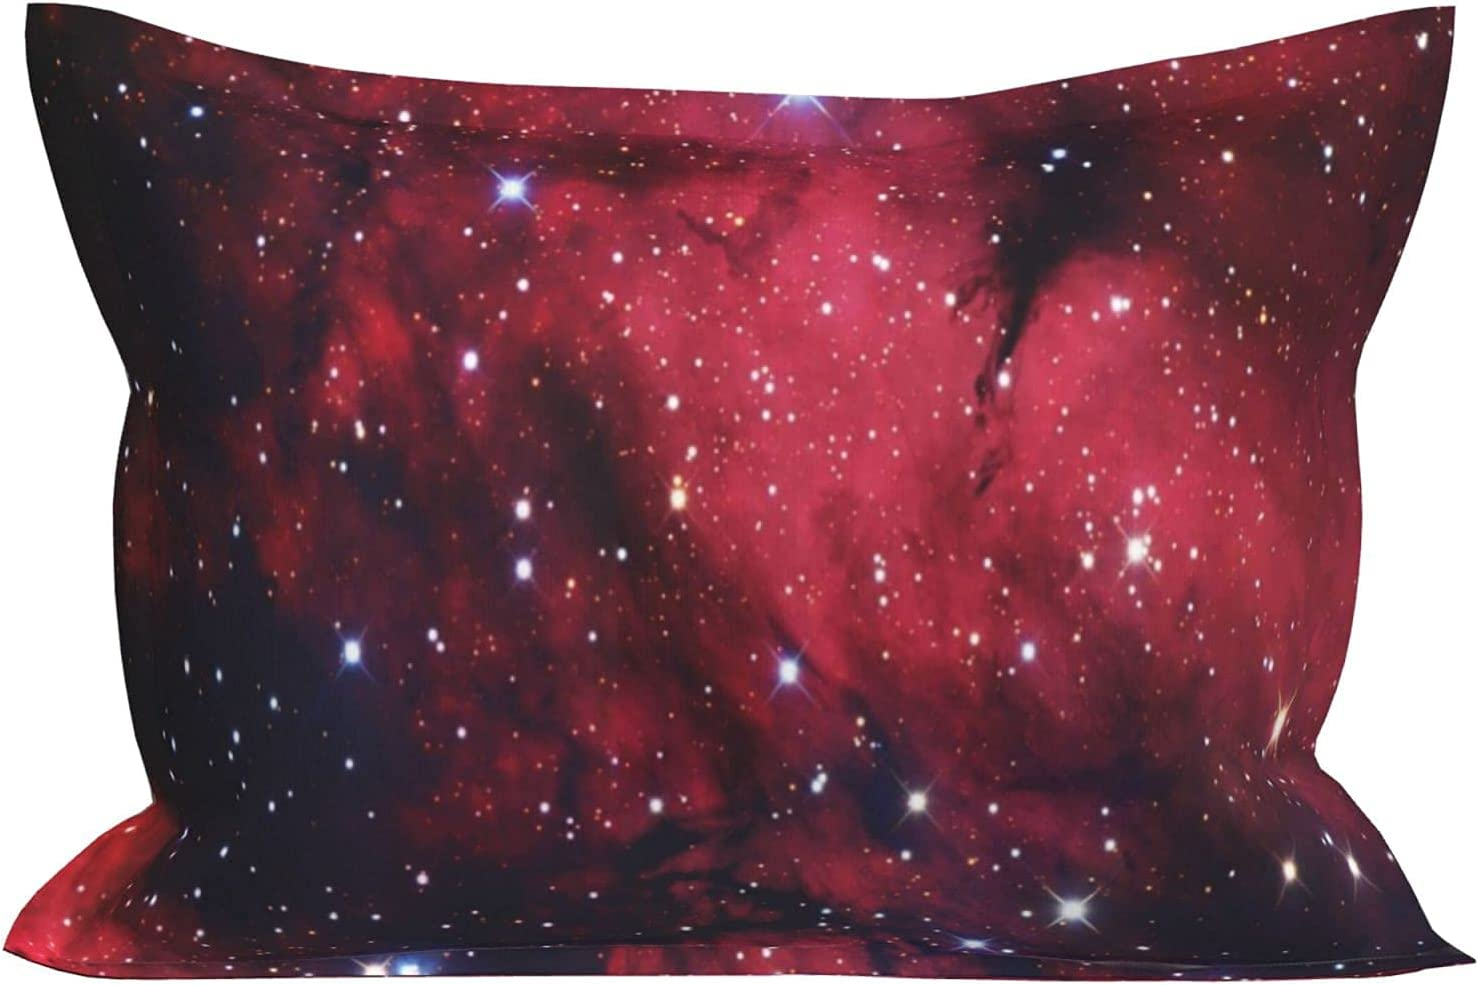 Some reservation huaxian Pillowcase for Hair and Star Skin Space Standard Galaxy Bargain